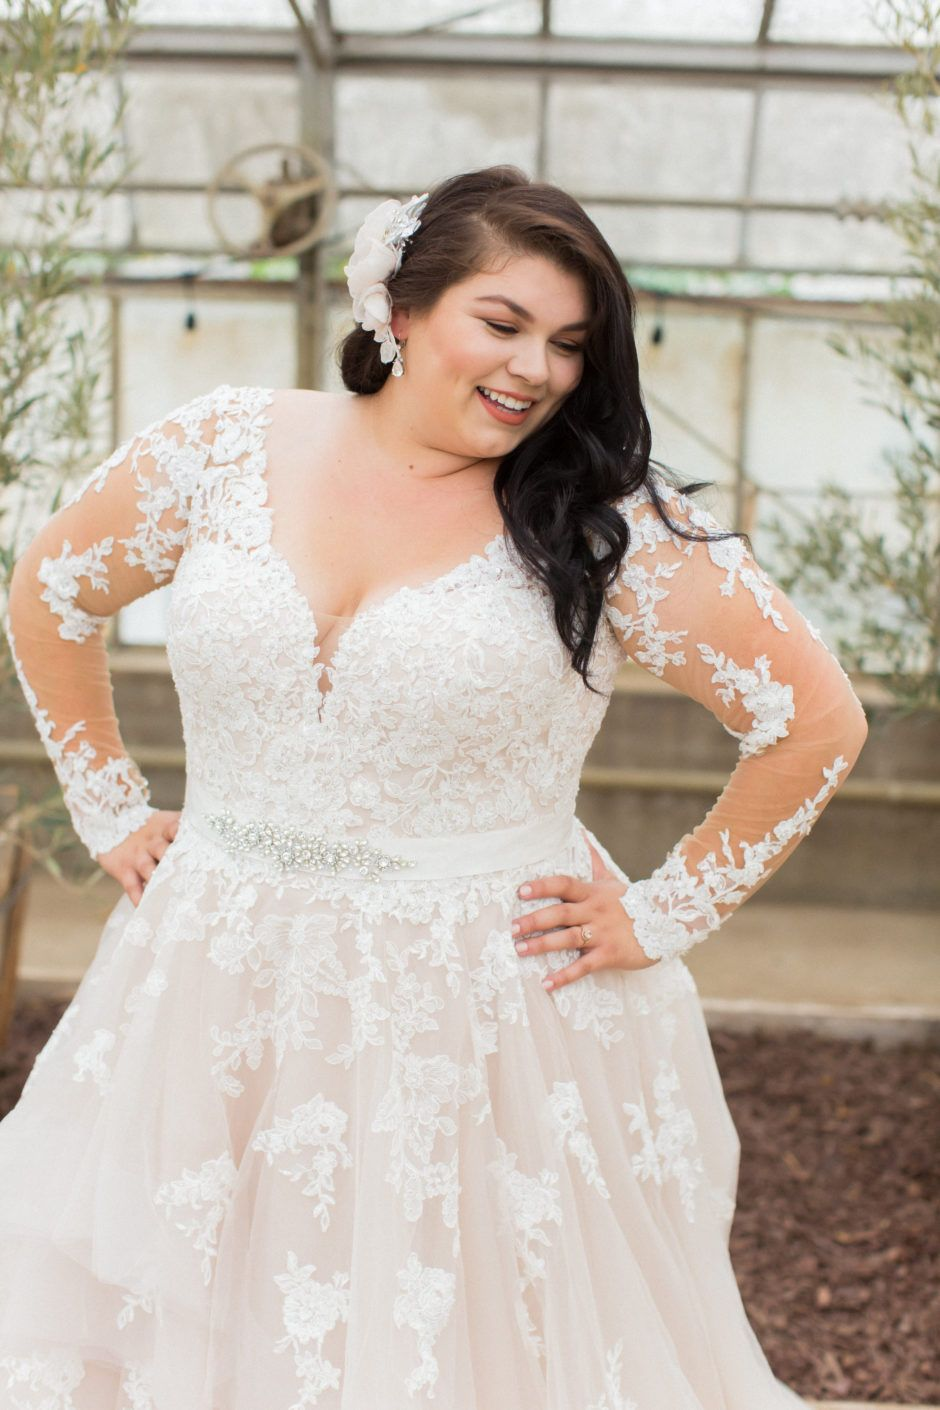 Pin on Bridal Gowns for the Curvy Bride